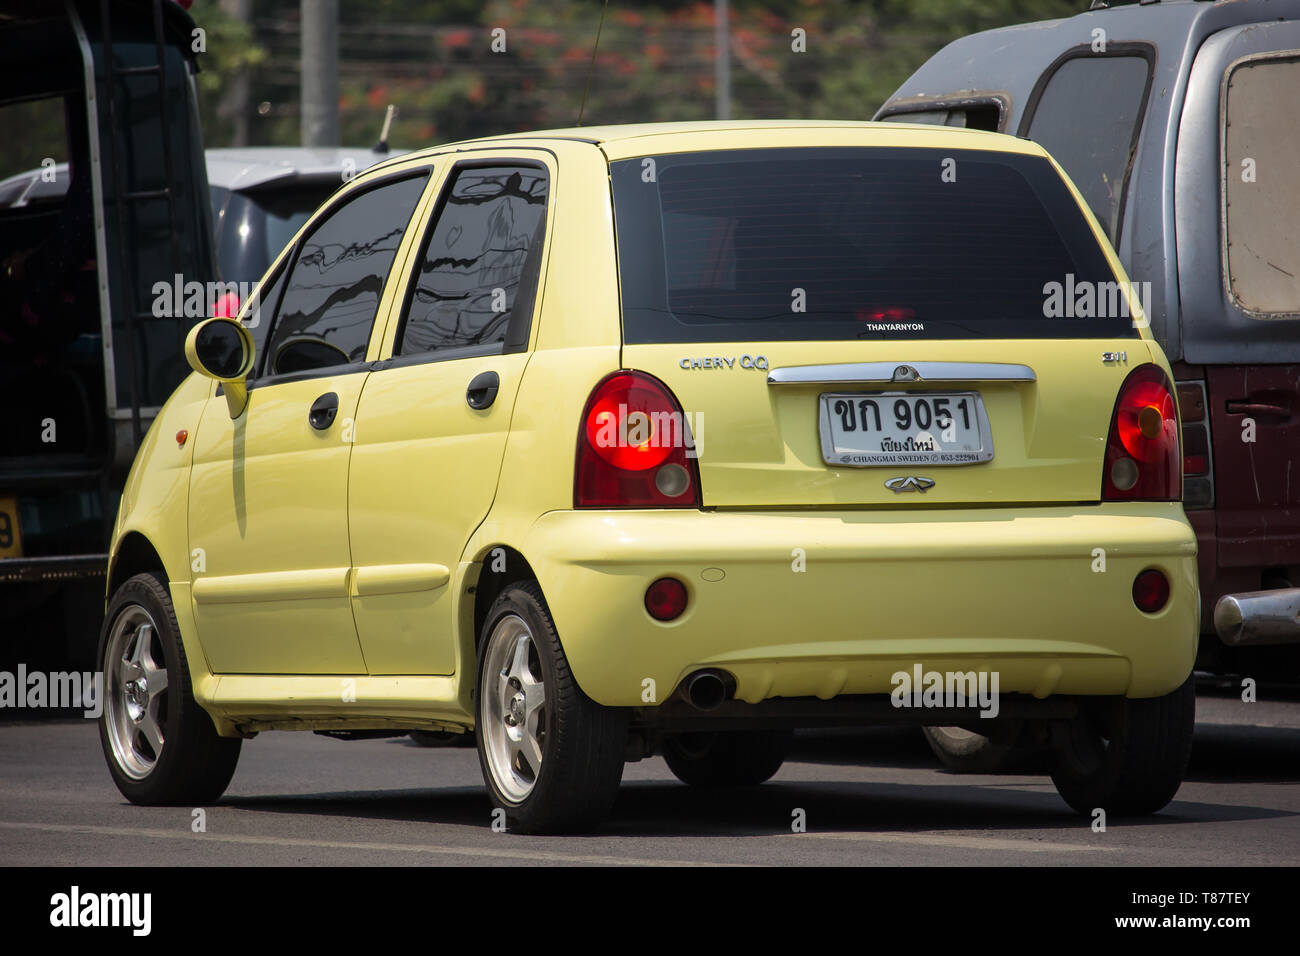 Chiangmai Thailand April 30 2019 Private Car Chery Qq On Road No 1001 8 Km From Chiangmai City Stock Photo Alamy